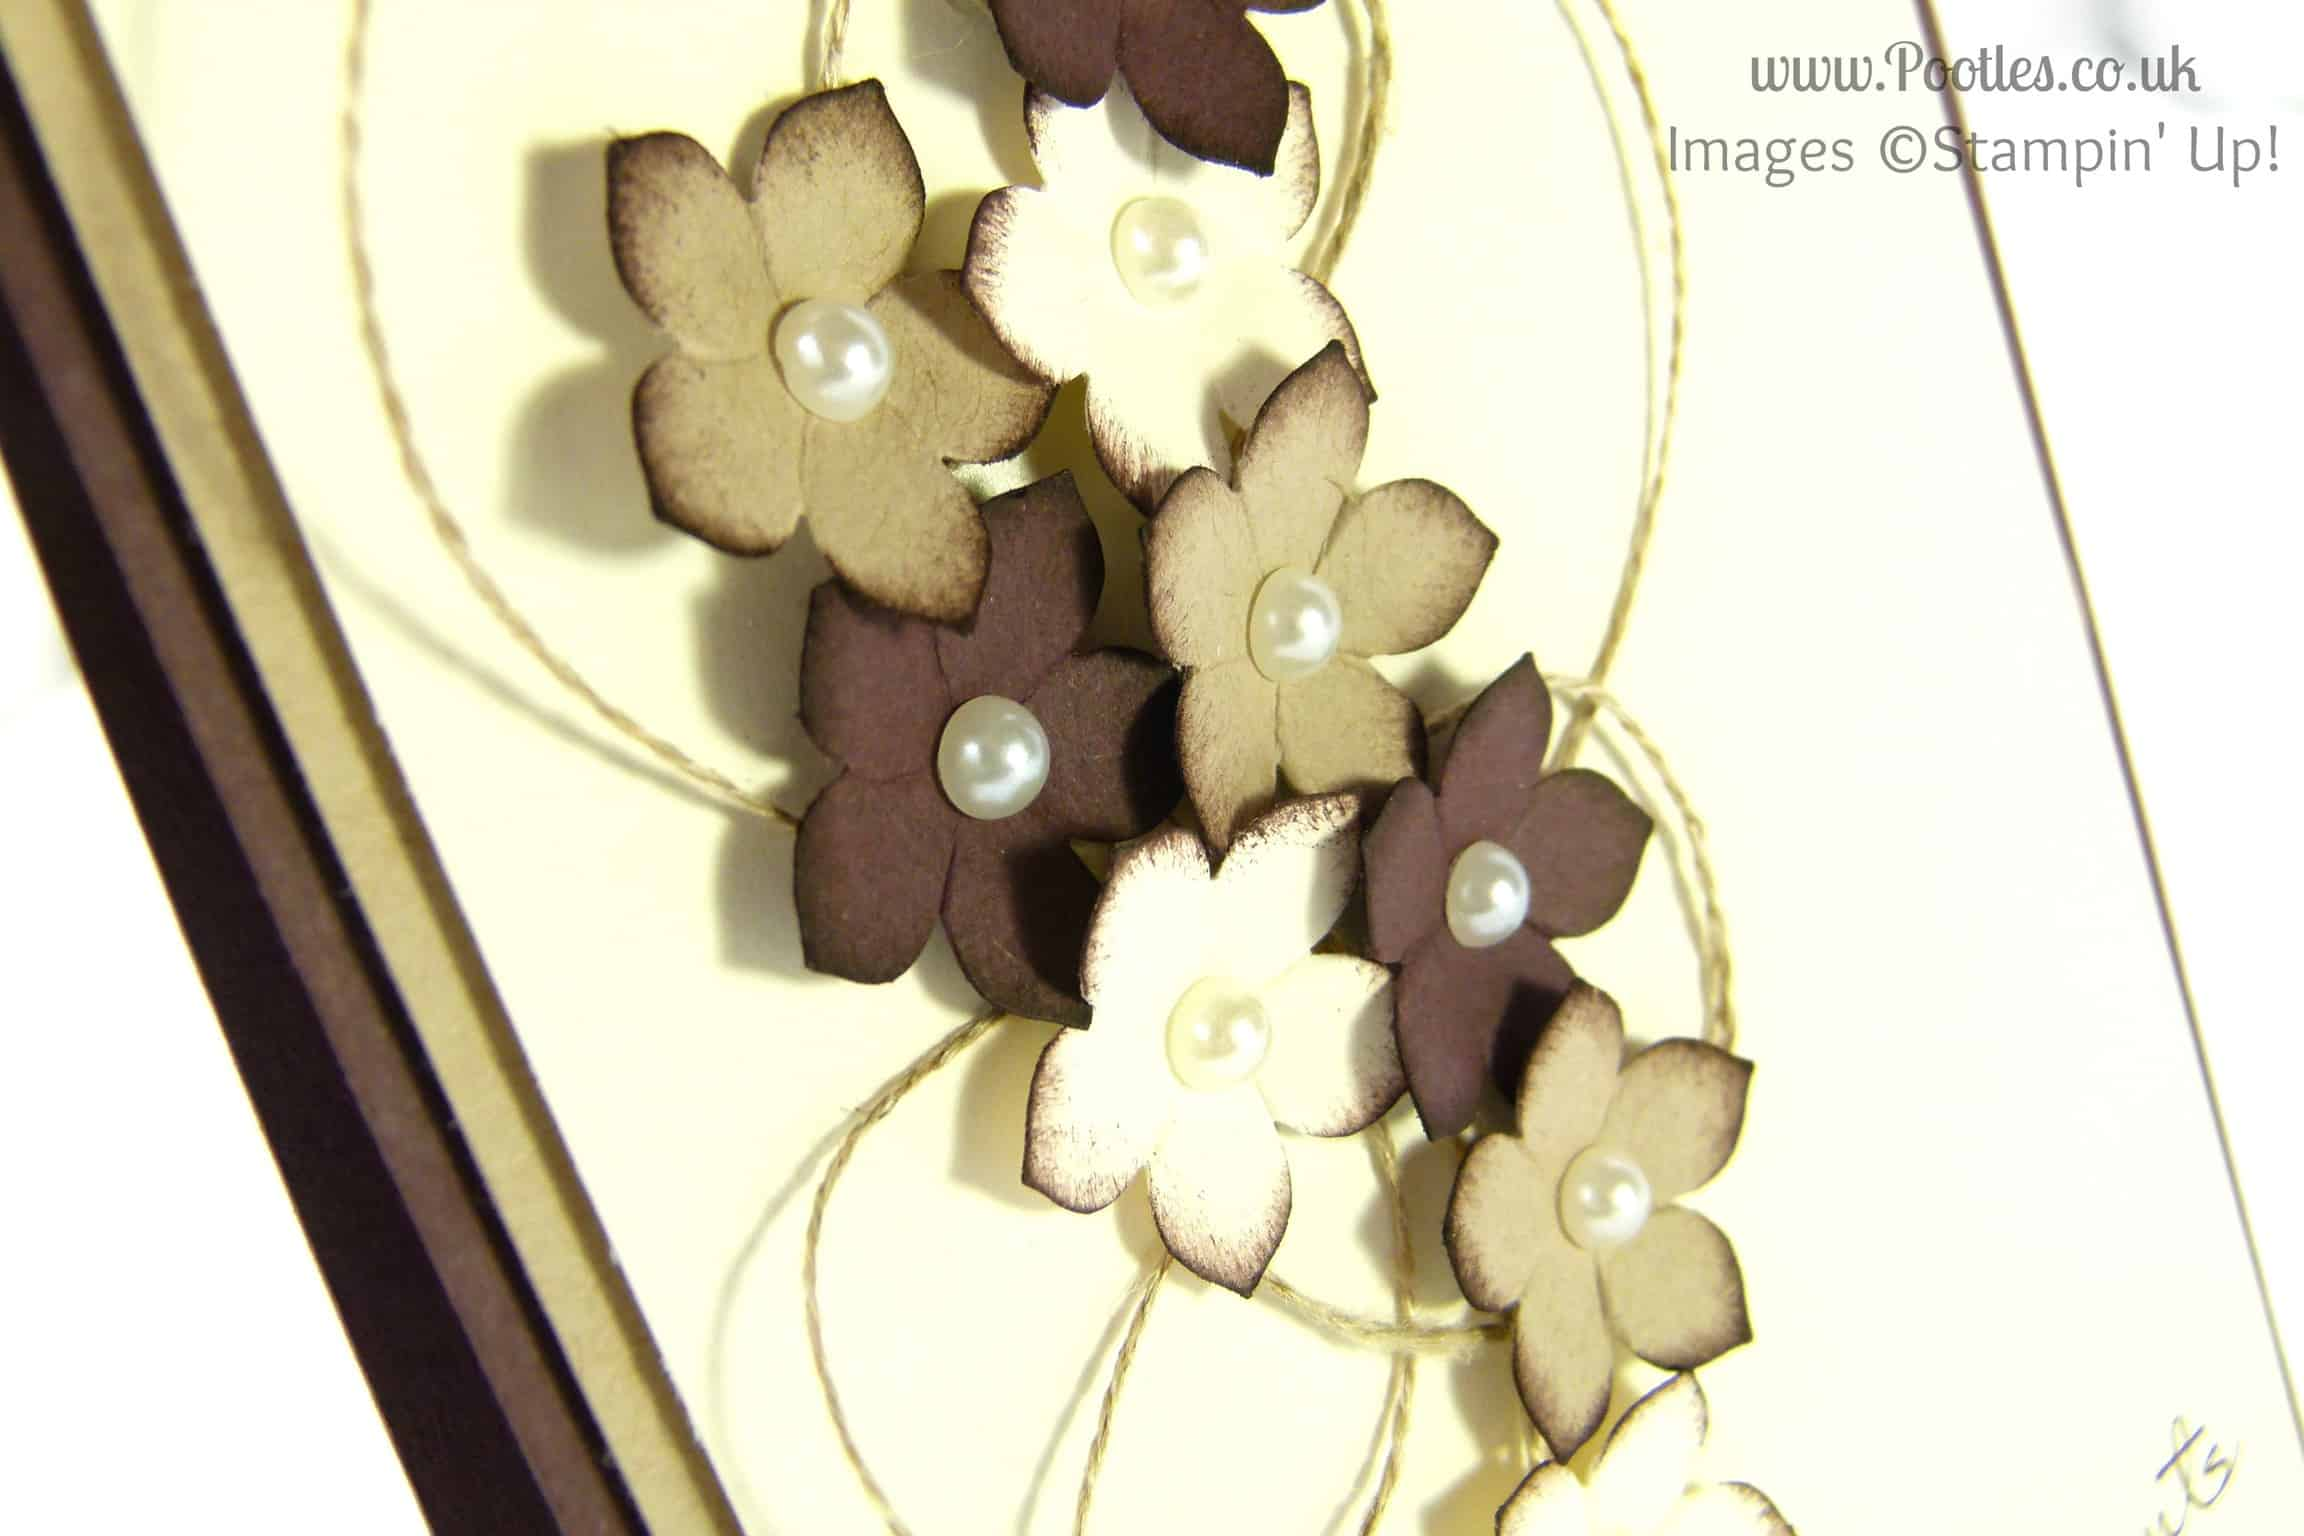 Pootles, Stampin Up UK Demonstrator - Chocolate and Cream Petite Petals Card close up